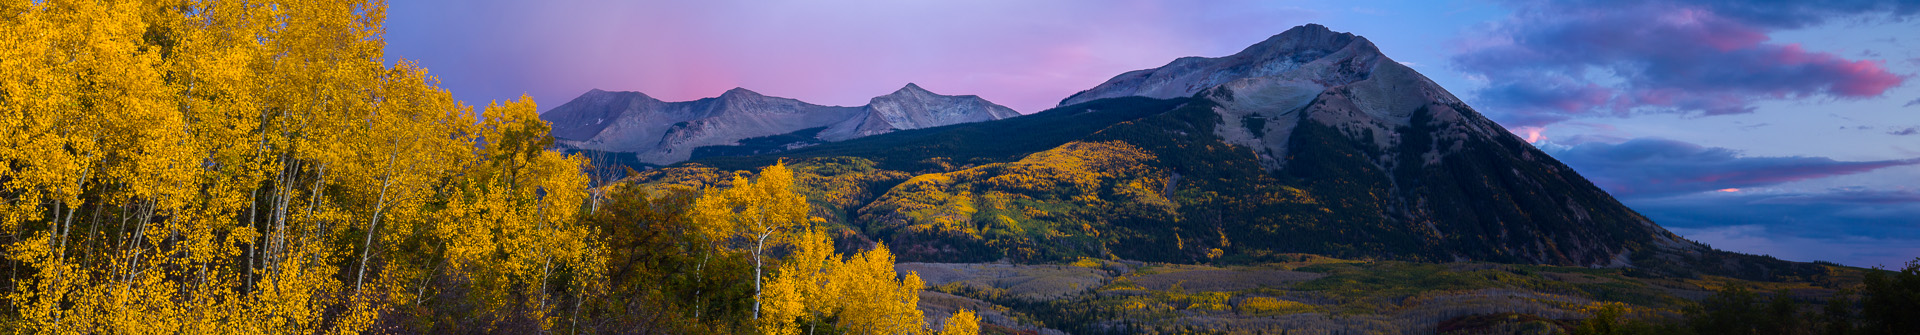 Beckwith Aspen at Dusk.jpg